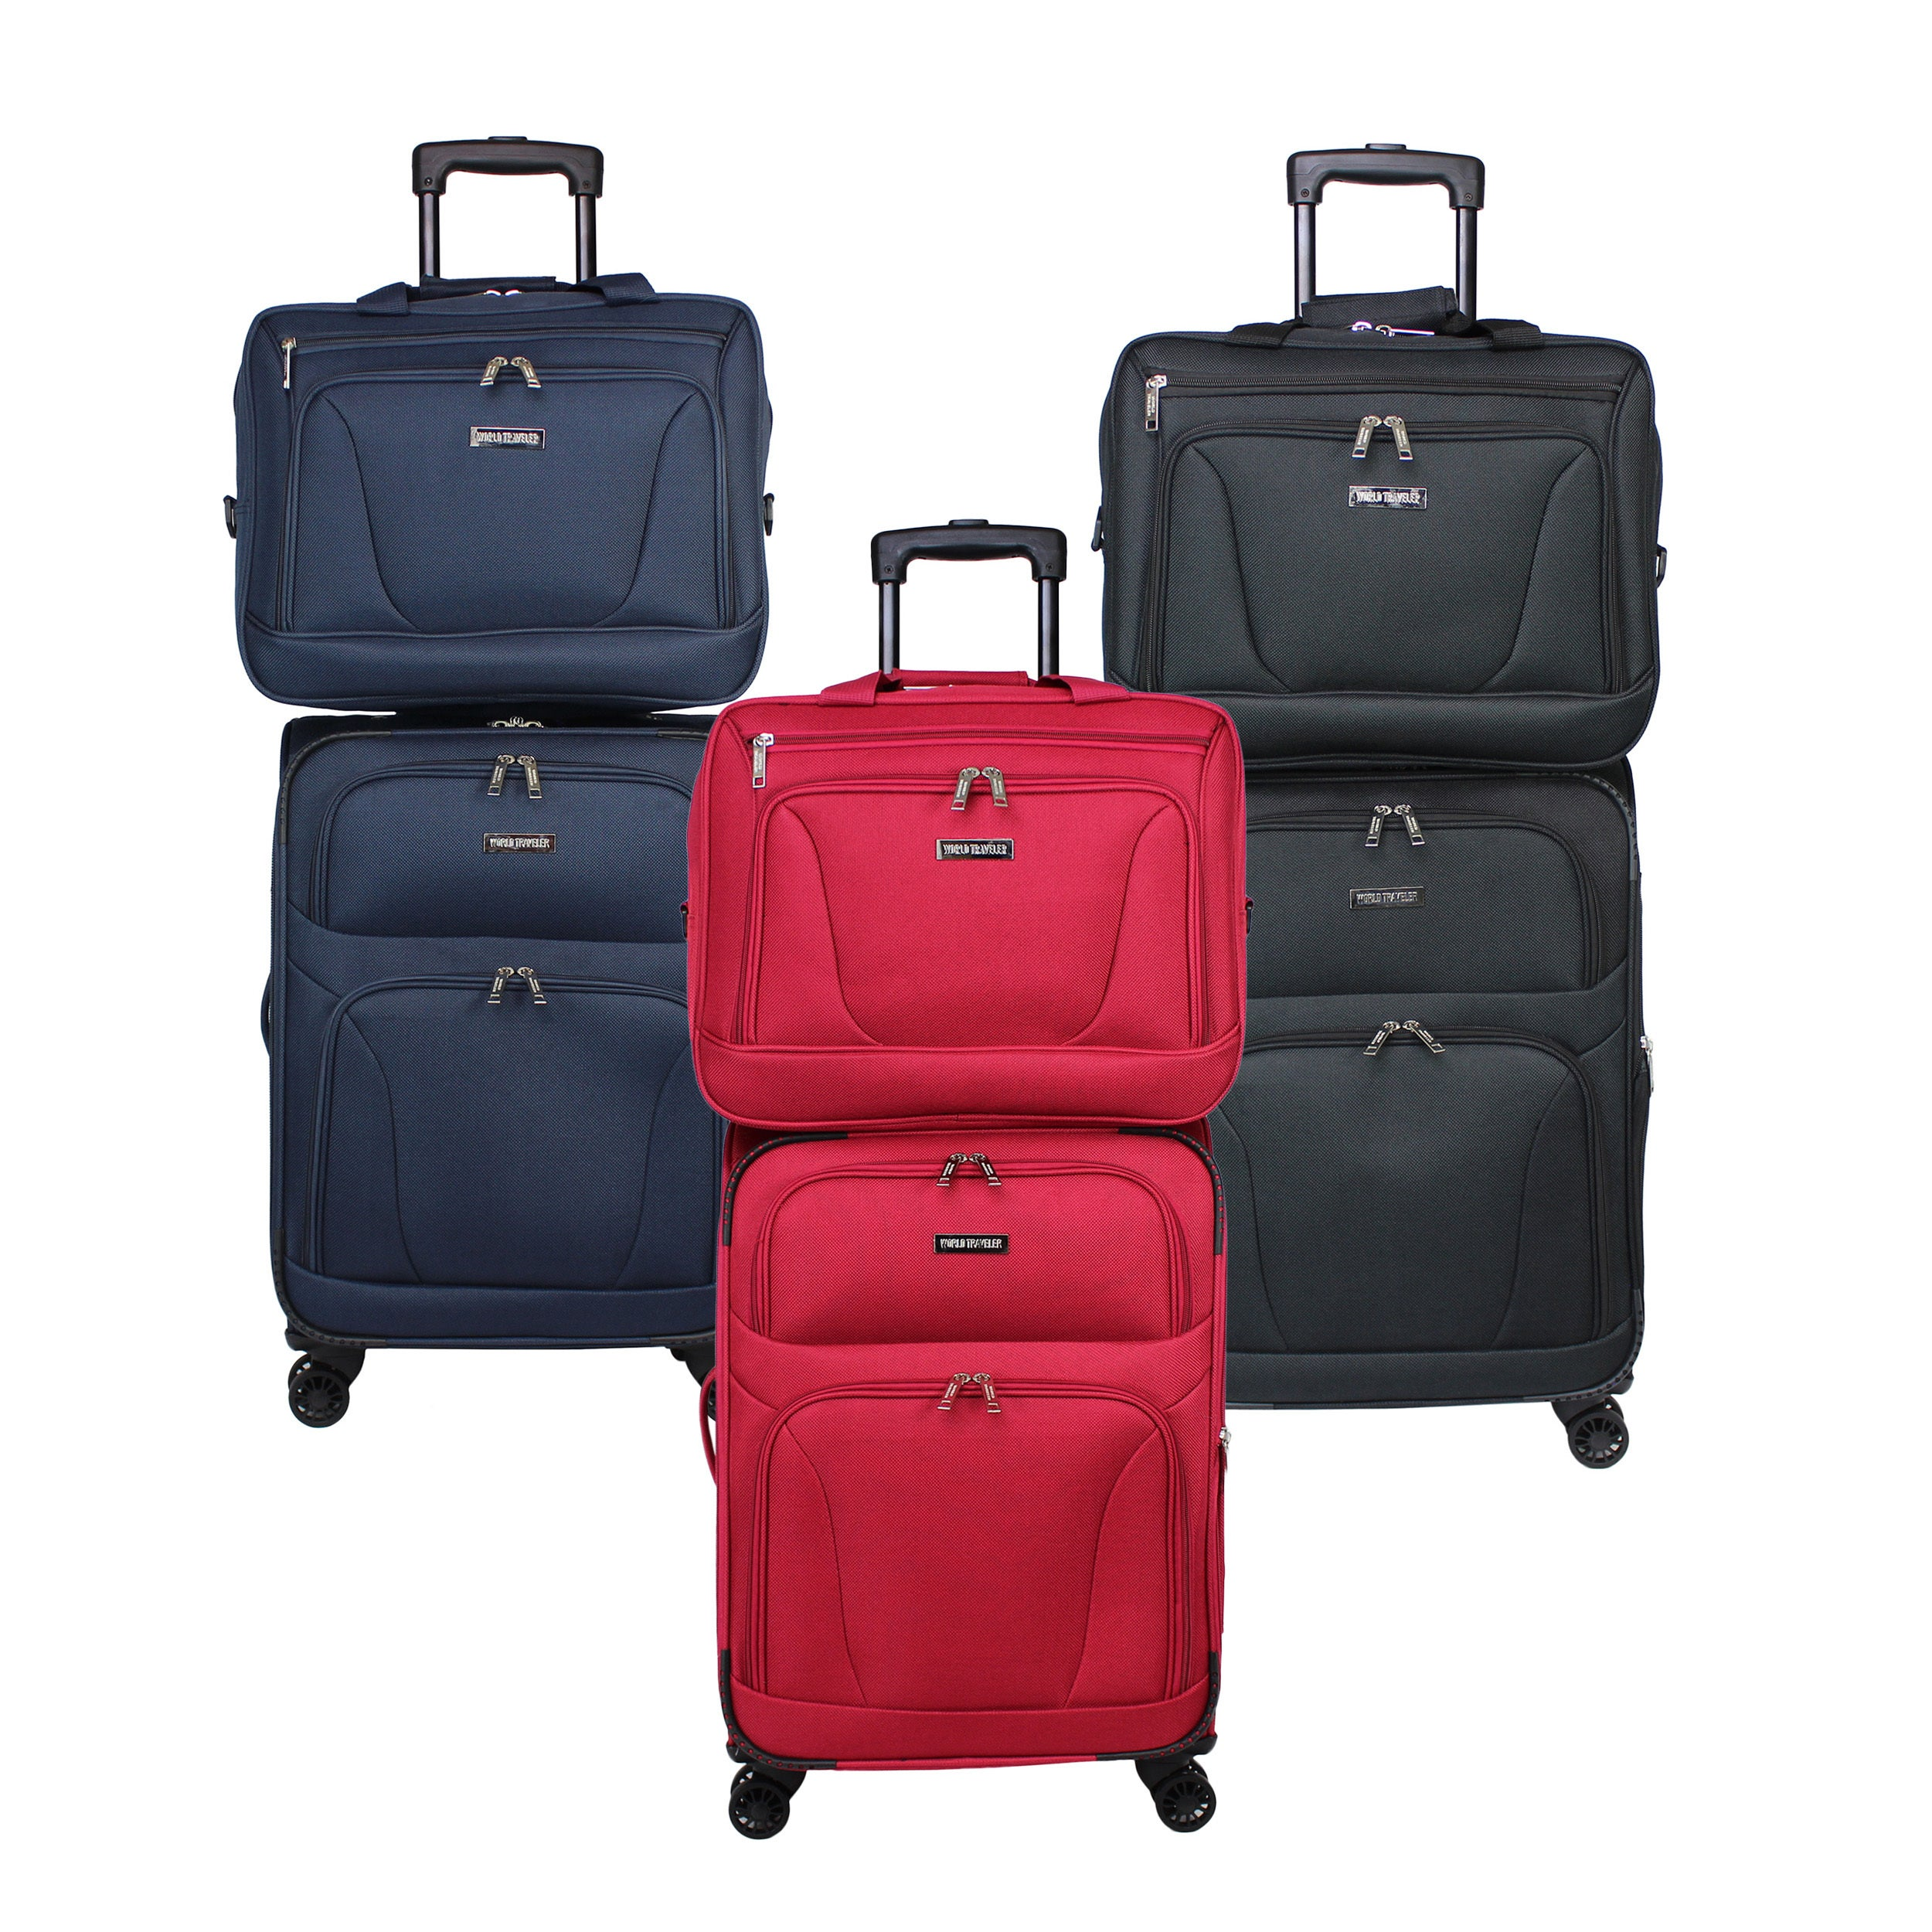 World Traveler Embarque Collection Super Lightweight 2-piece Carry On  Spinner Luggage Set 7a28a87aa45e